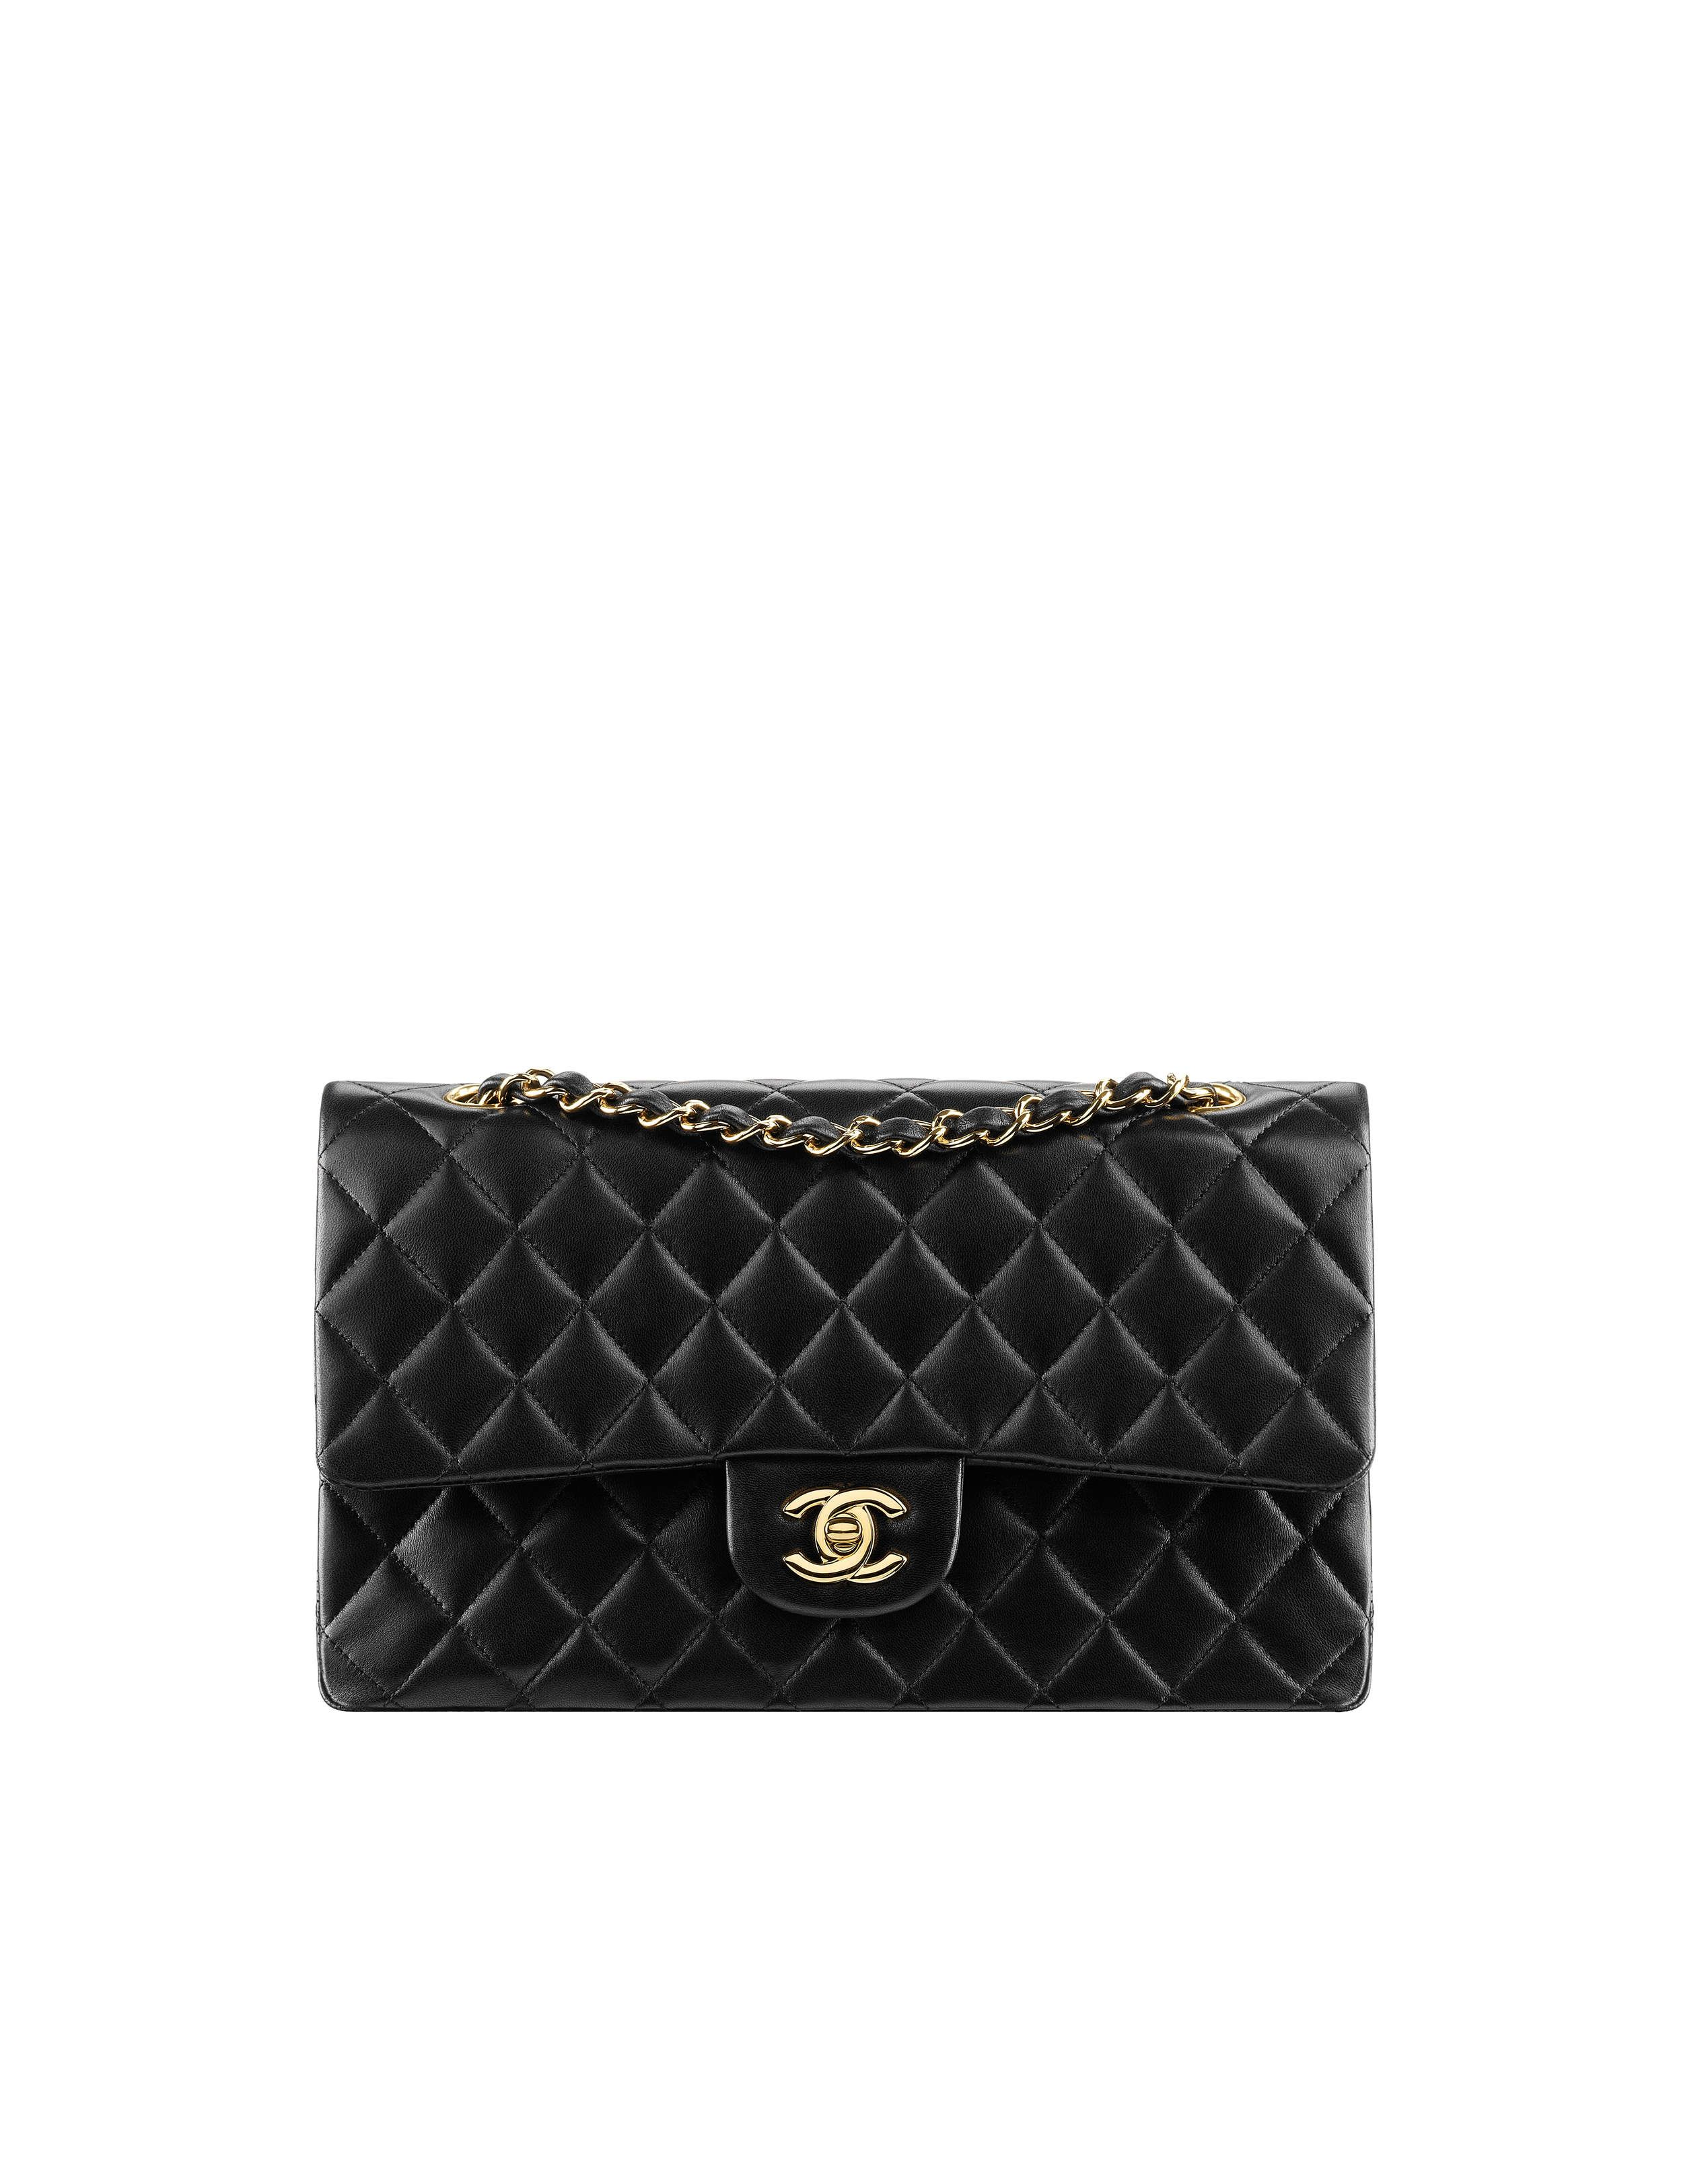 fd6954f1415d The latest Handbags collections on the CHANEL official website ...